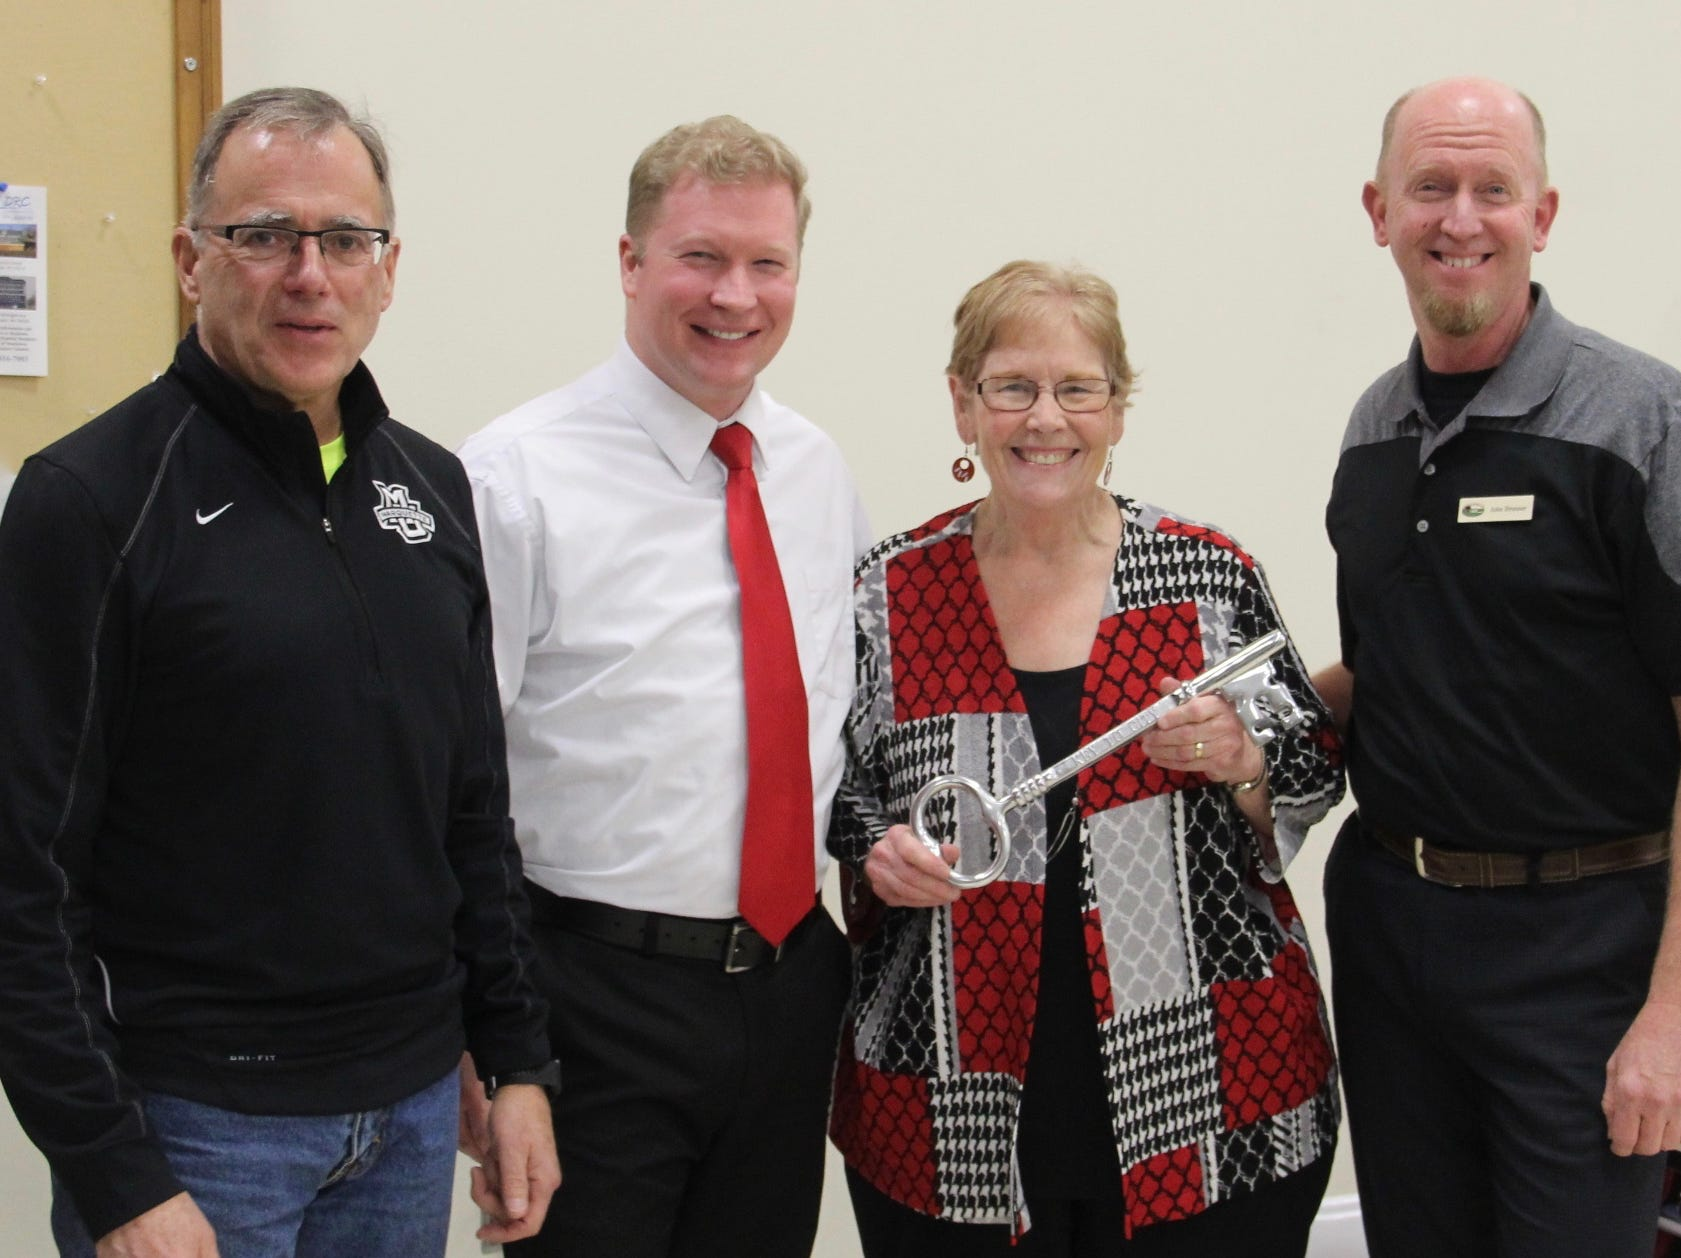 Friends of Mariners Trail past president and board member Judy Corrado was presented a key to the cityby Manitowoc MayorJustin Nickels Jan. 23. Pictured from left:FOMT treasurer and Manitowoc District 5 Ald. Lee Kummer, Nickels, Corrado and FOMT PresidentJohn Brunner.